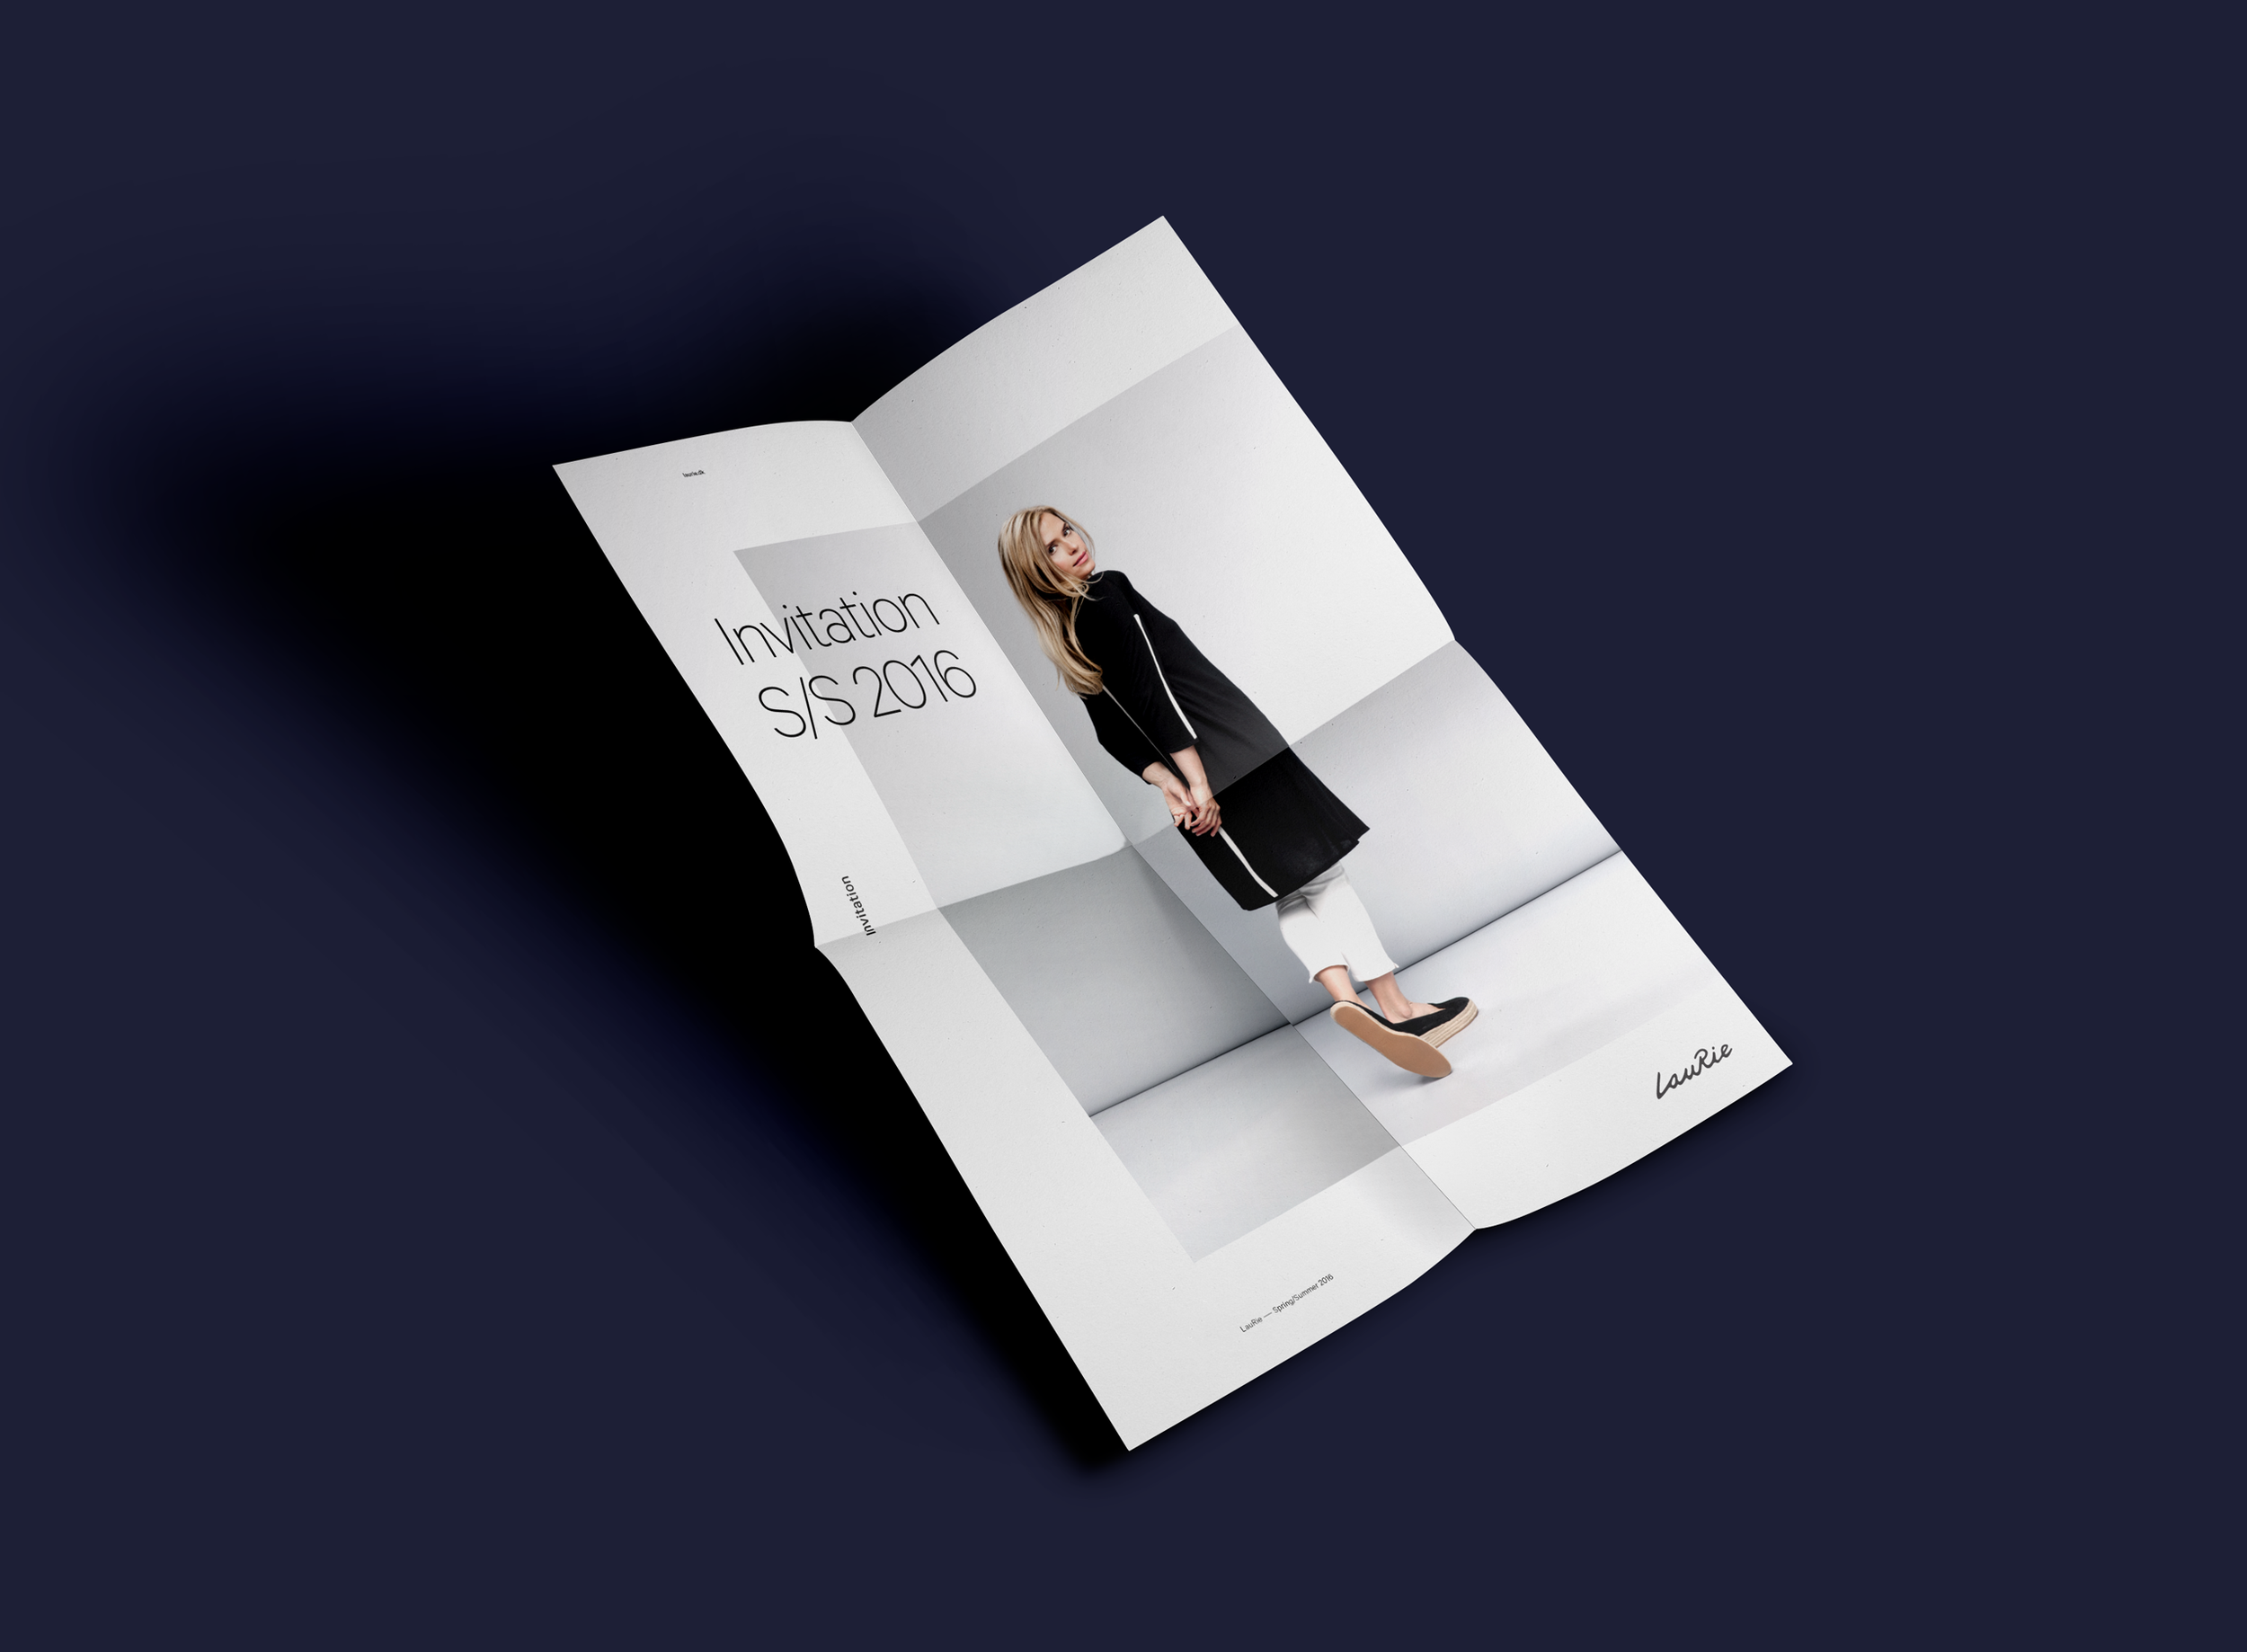 LauRie_Plakat_Poster_Brand_Identity_Fuhr_Studio_2.png